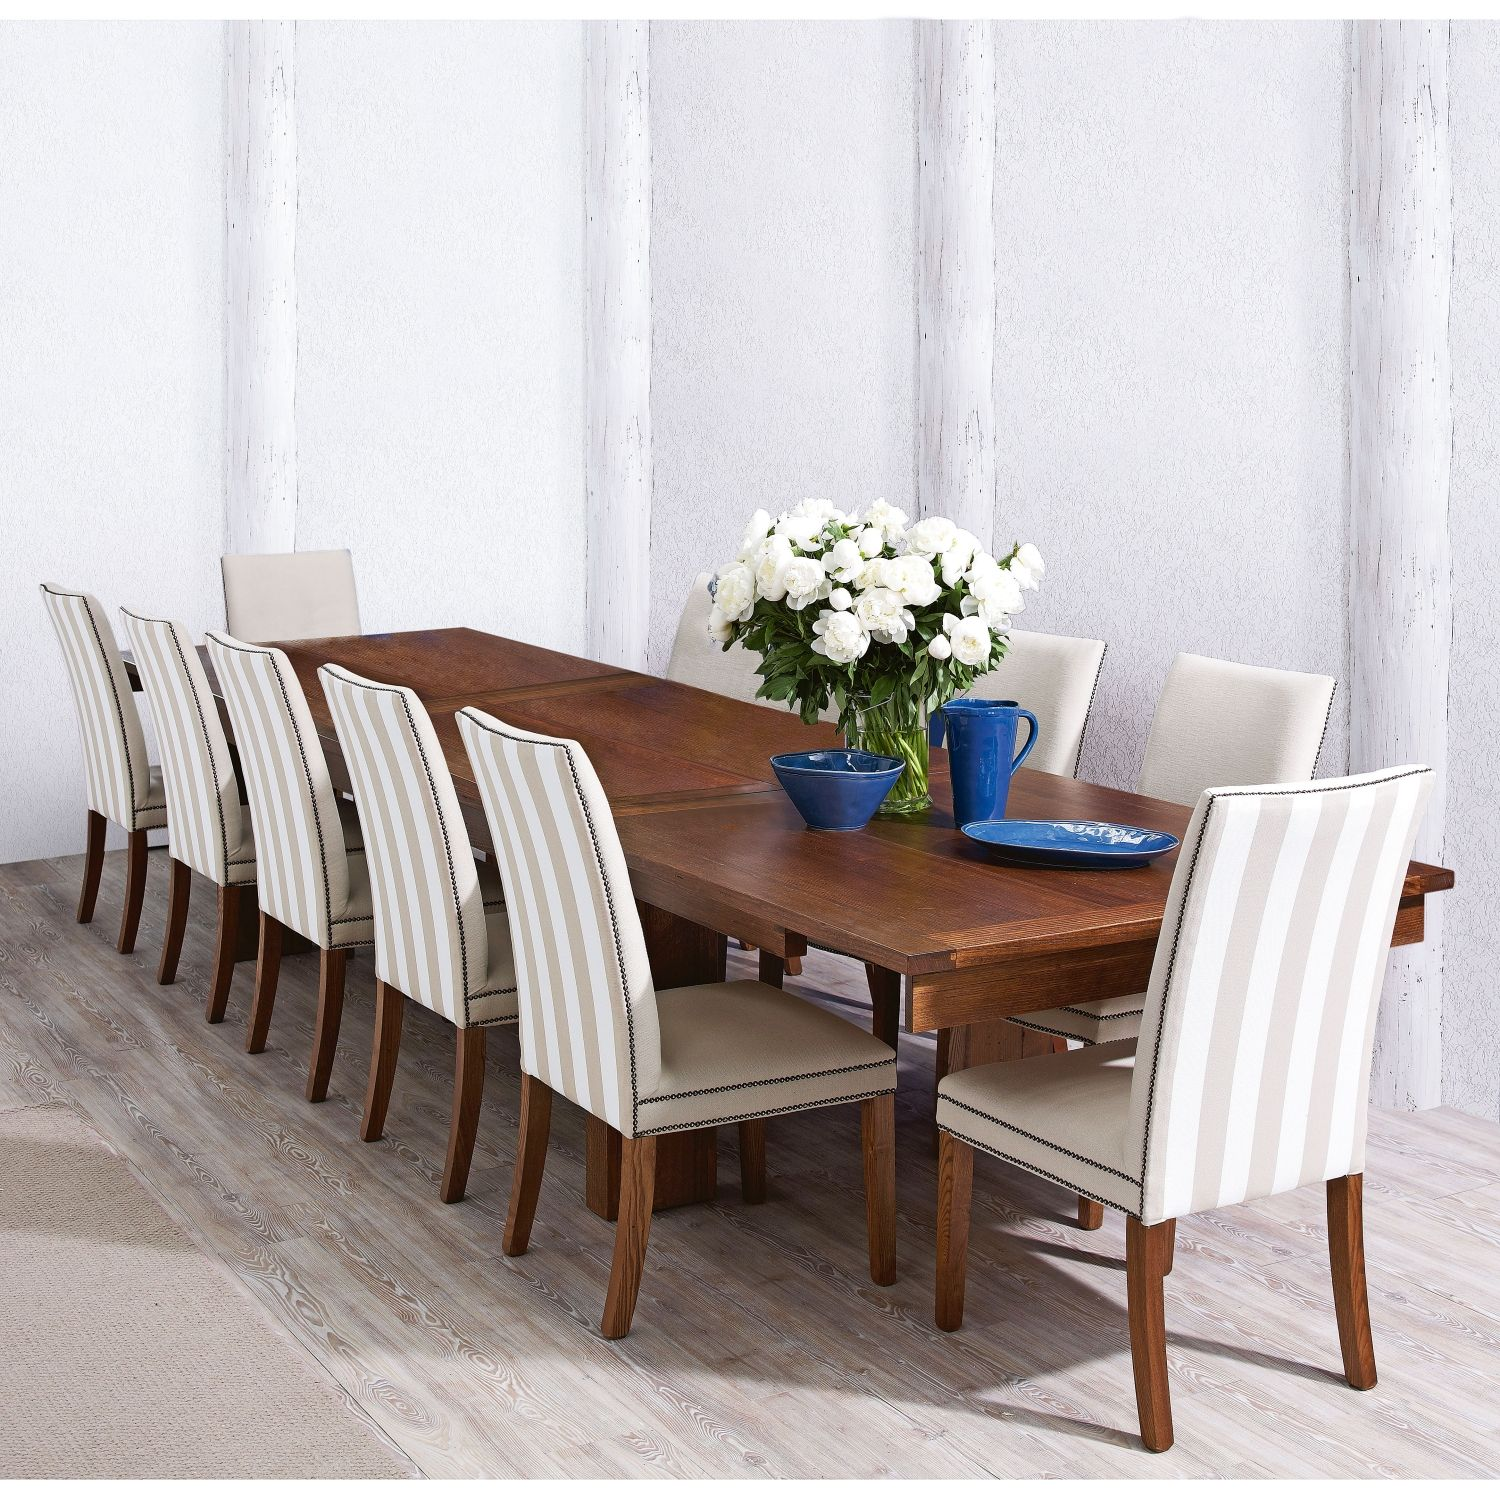 Dining Room Table Extension: Matilba Triple Butterfly Extension Dining Table From